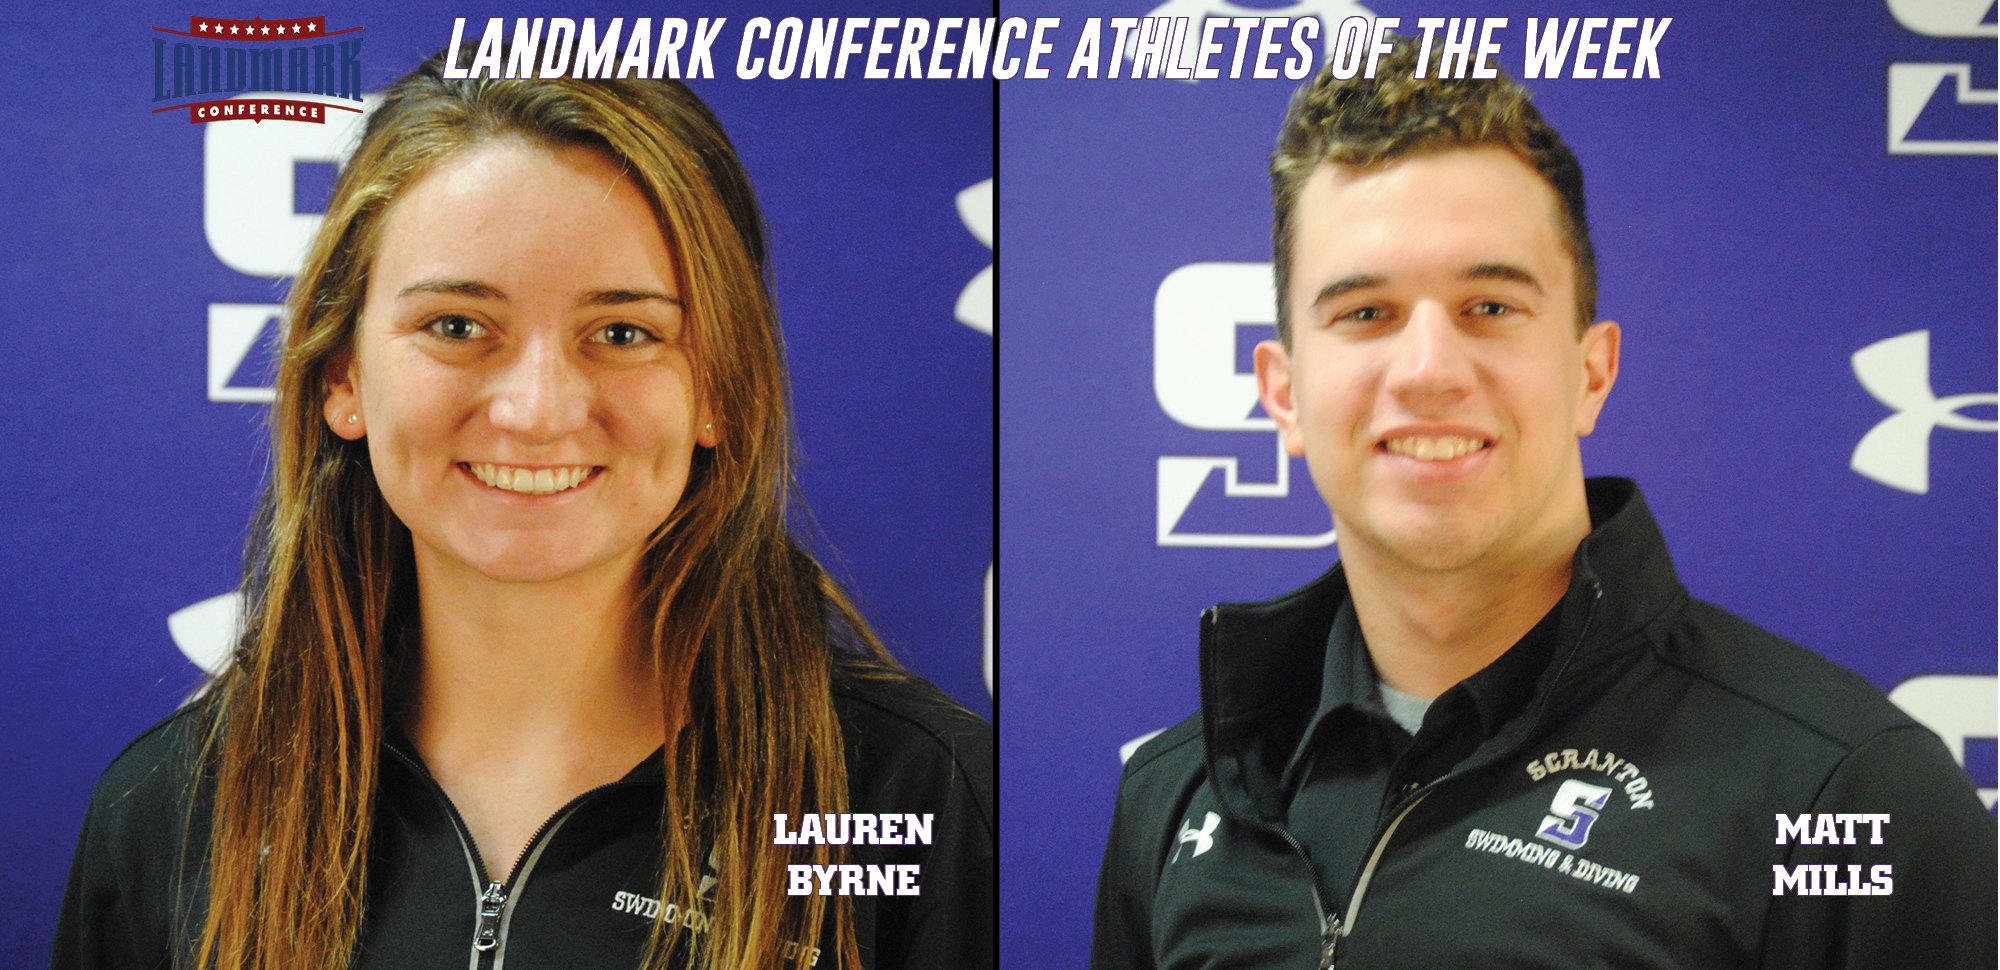 Byrne, Mills Sweep Landmark Conference Women's/Men's Swimming & Diving Athlete of the Week Honors